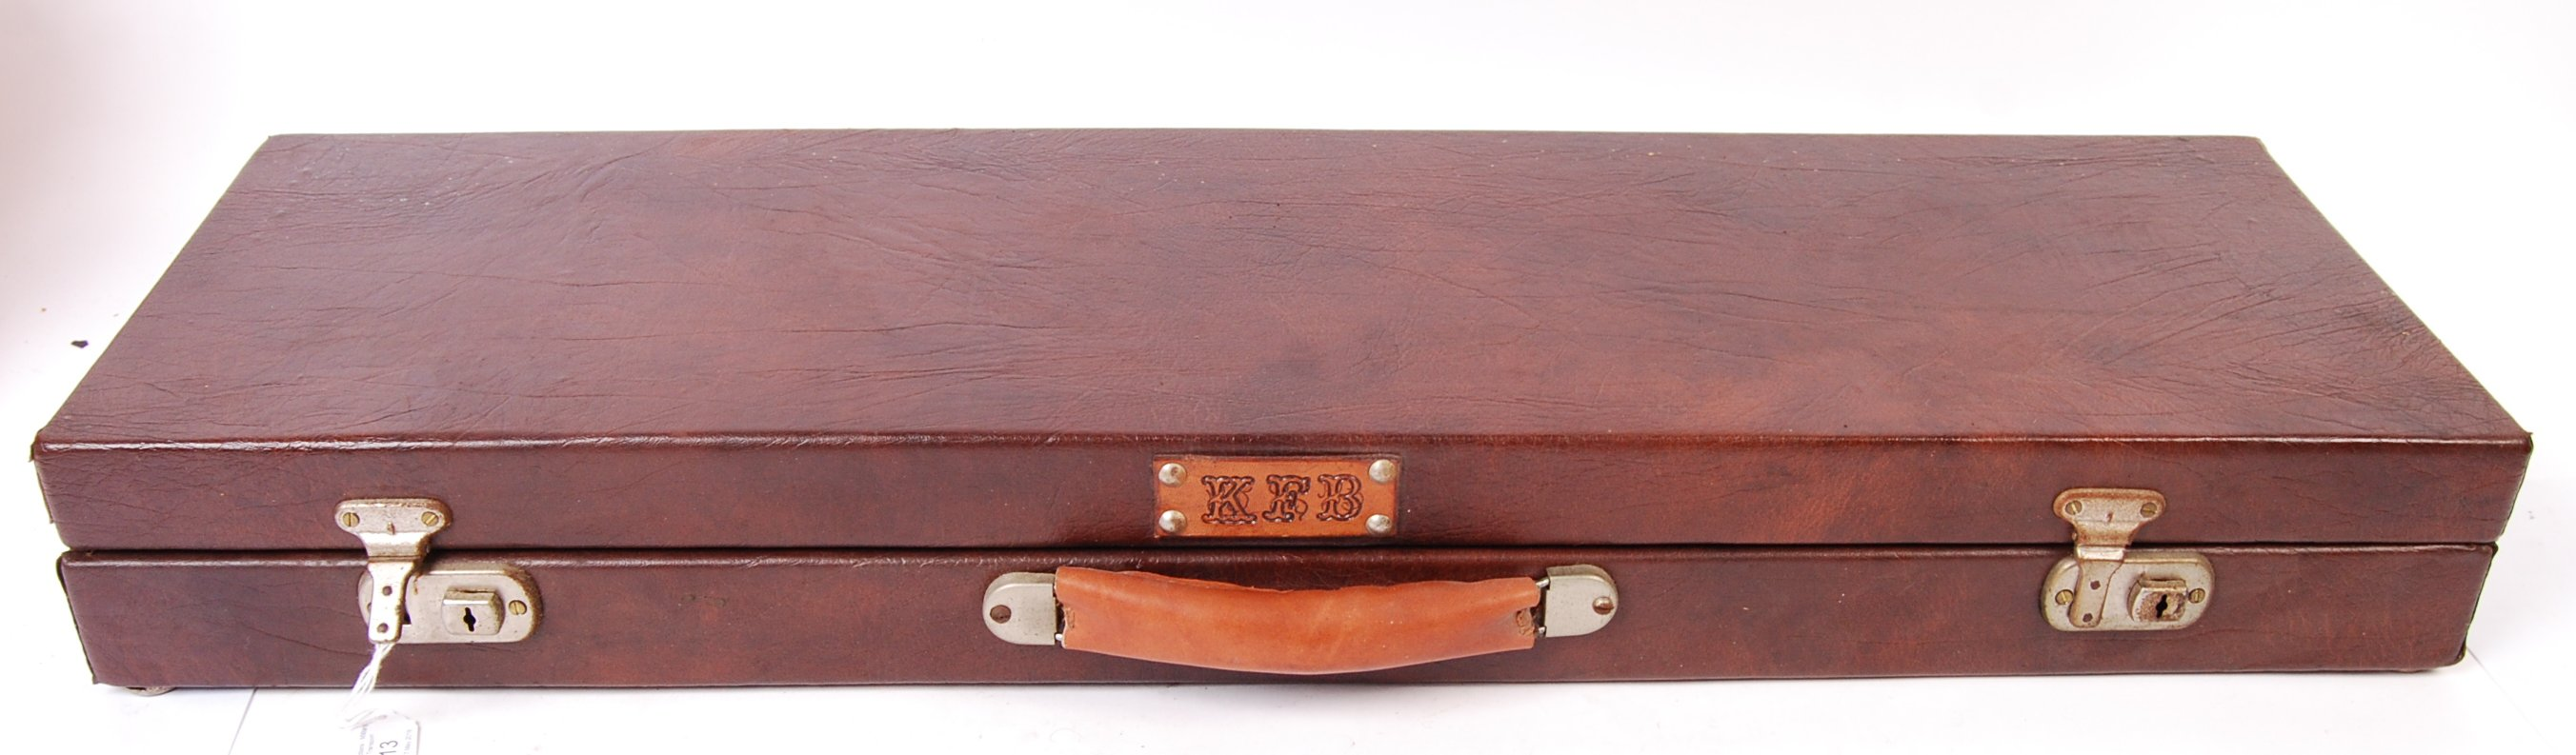 VINTAGE LEATHER SHOTGUN CASE WITH FITTED INTERIOR - Image 2 of 3